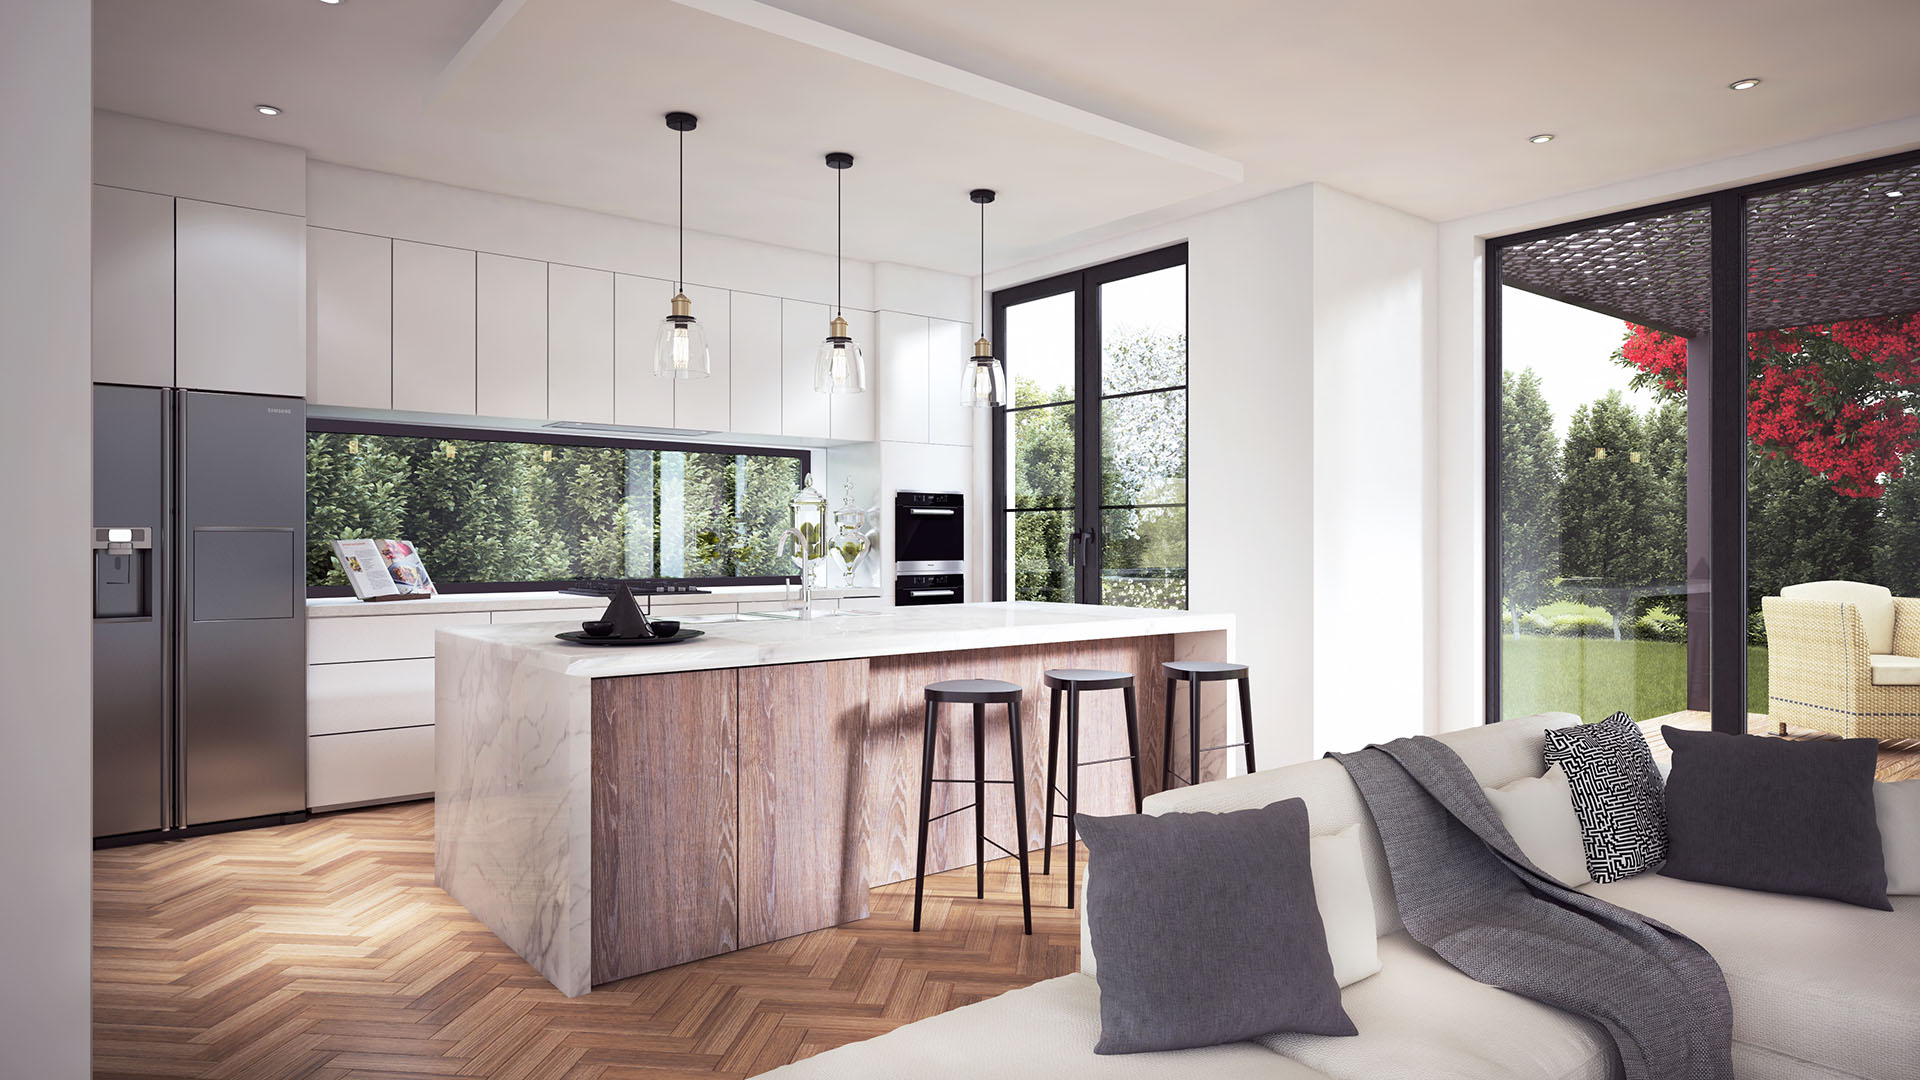 and design smart archicgi living kitchen rendering room projects dining combo interior